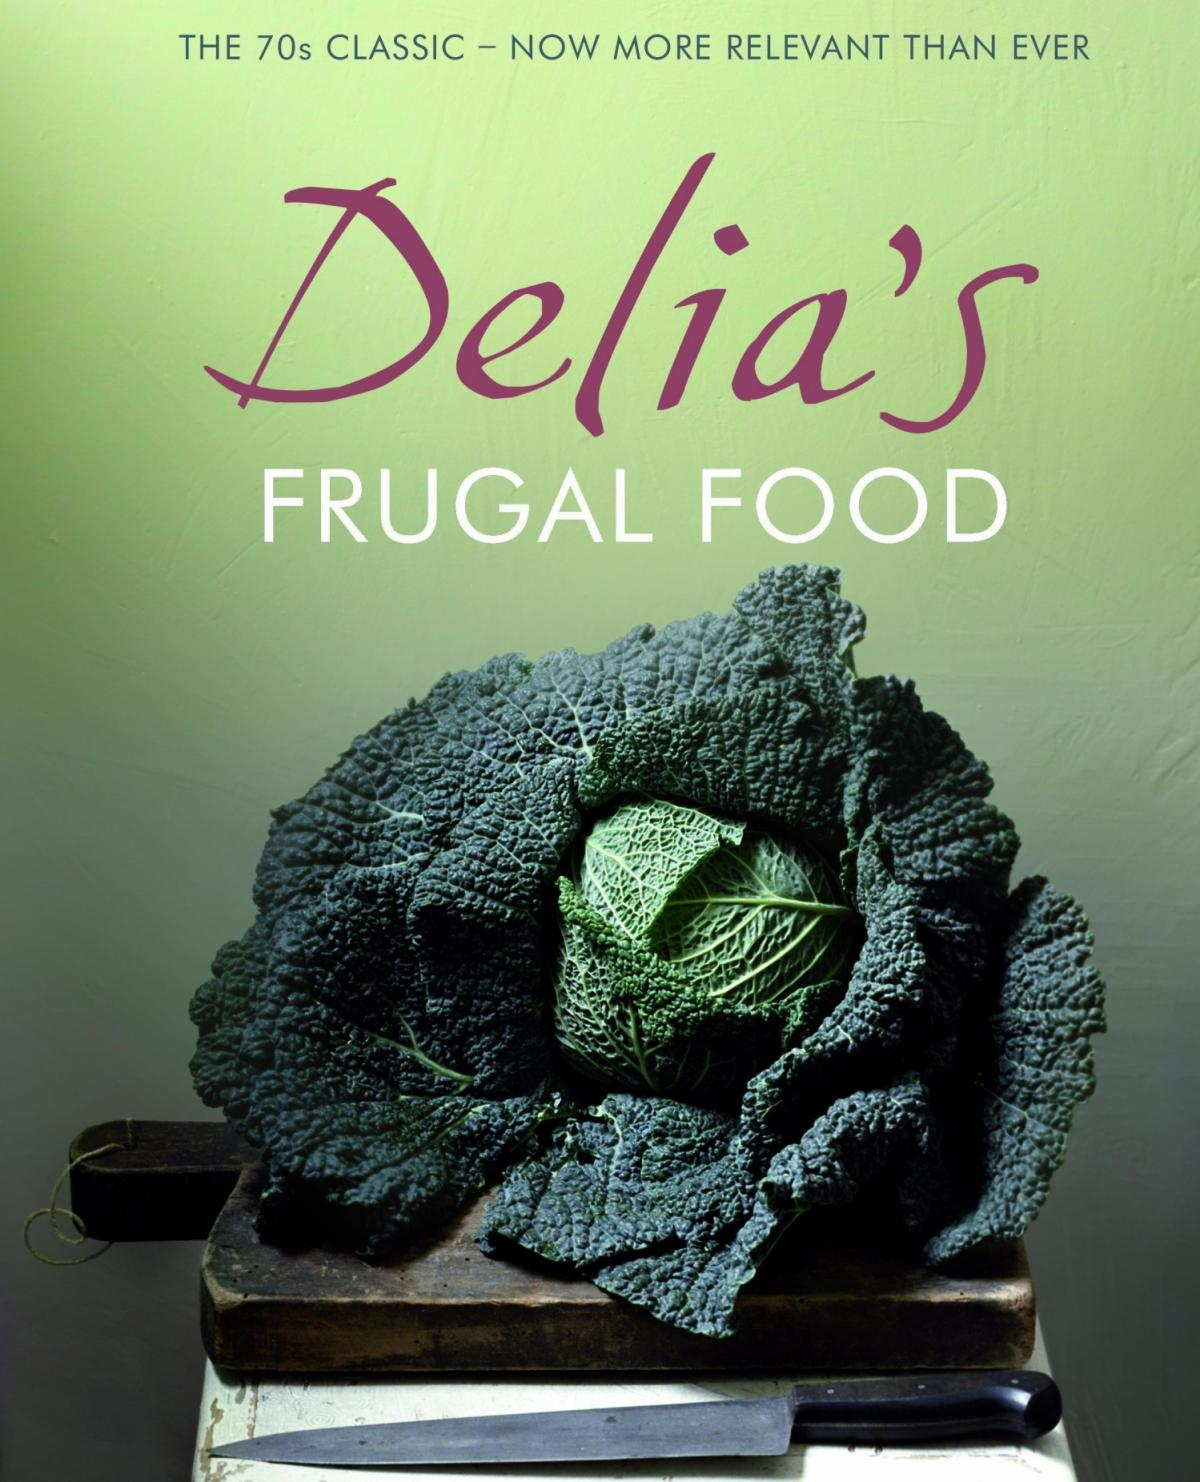 A picture of Delia's Delia's Frugal Food recipes